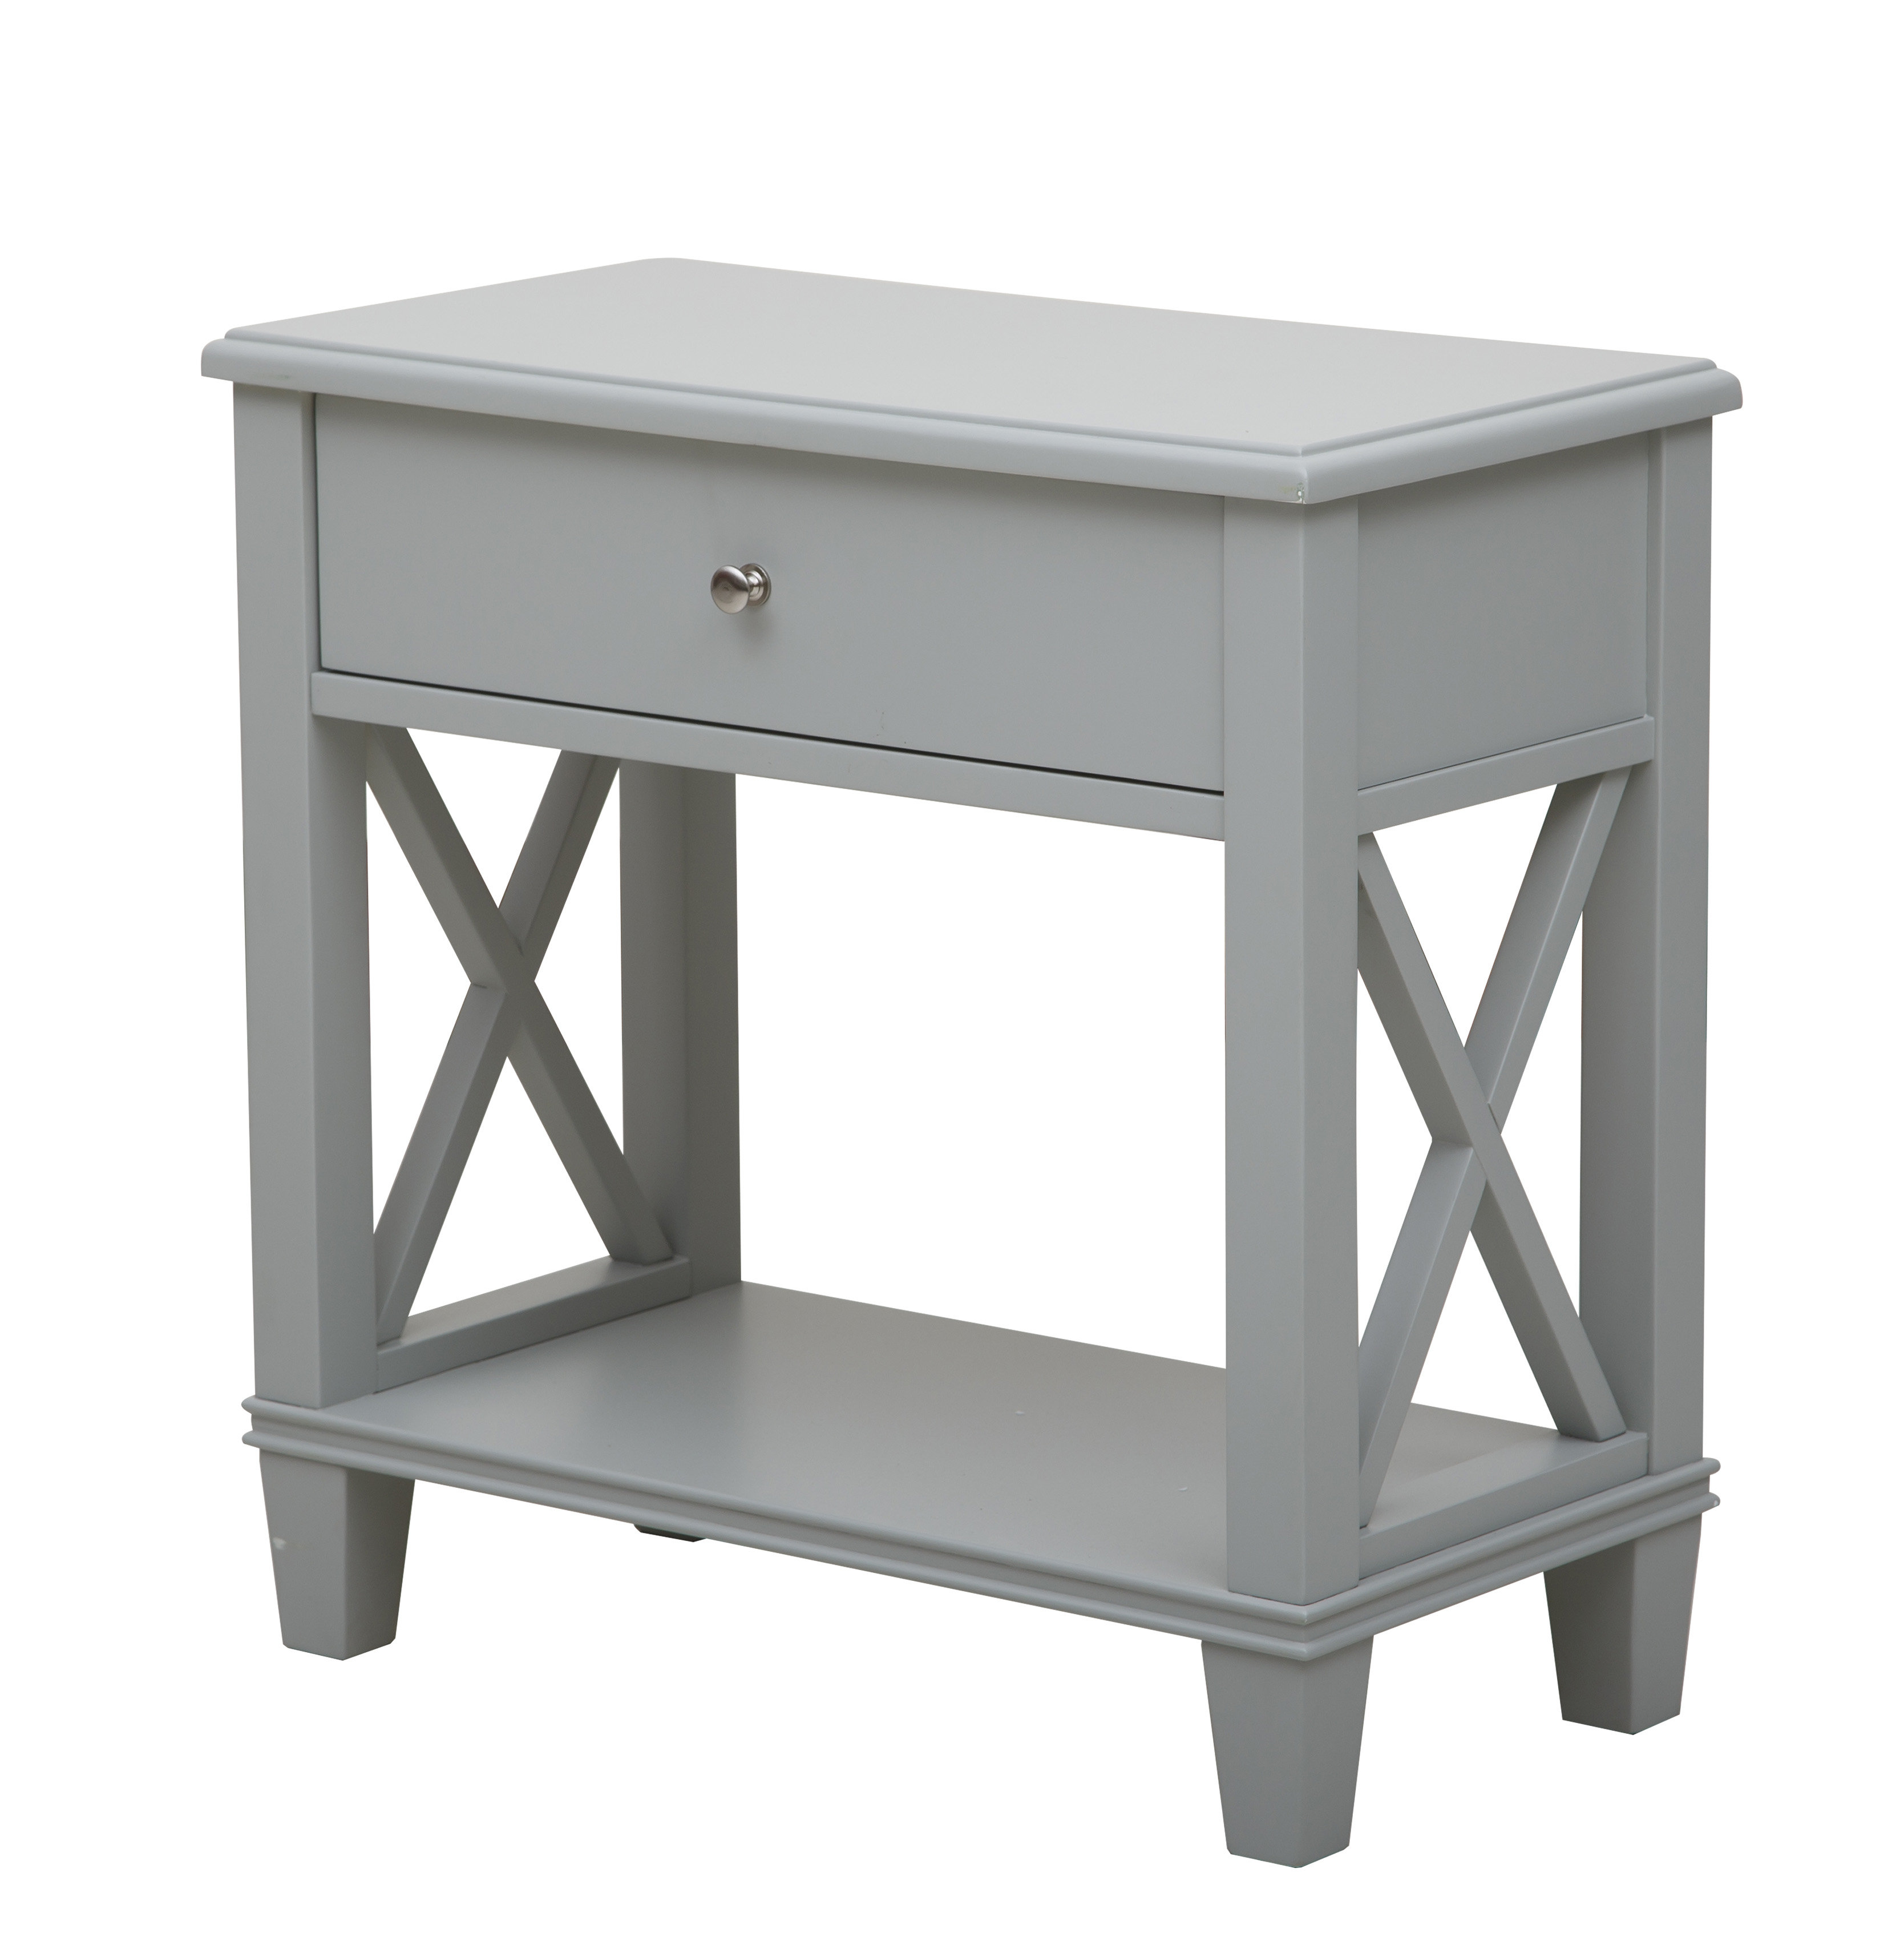 boho end table flintridge room essentials stacking accent quickview antique rectangular bedside tables small sofa chair tall white nightstand battery operated lamps pier console